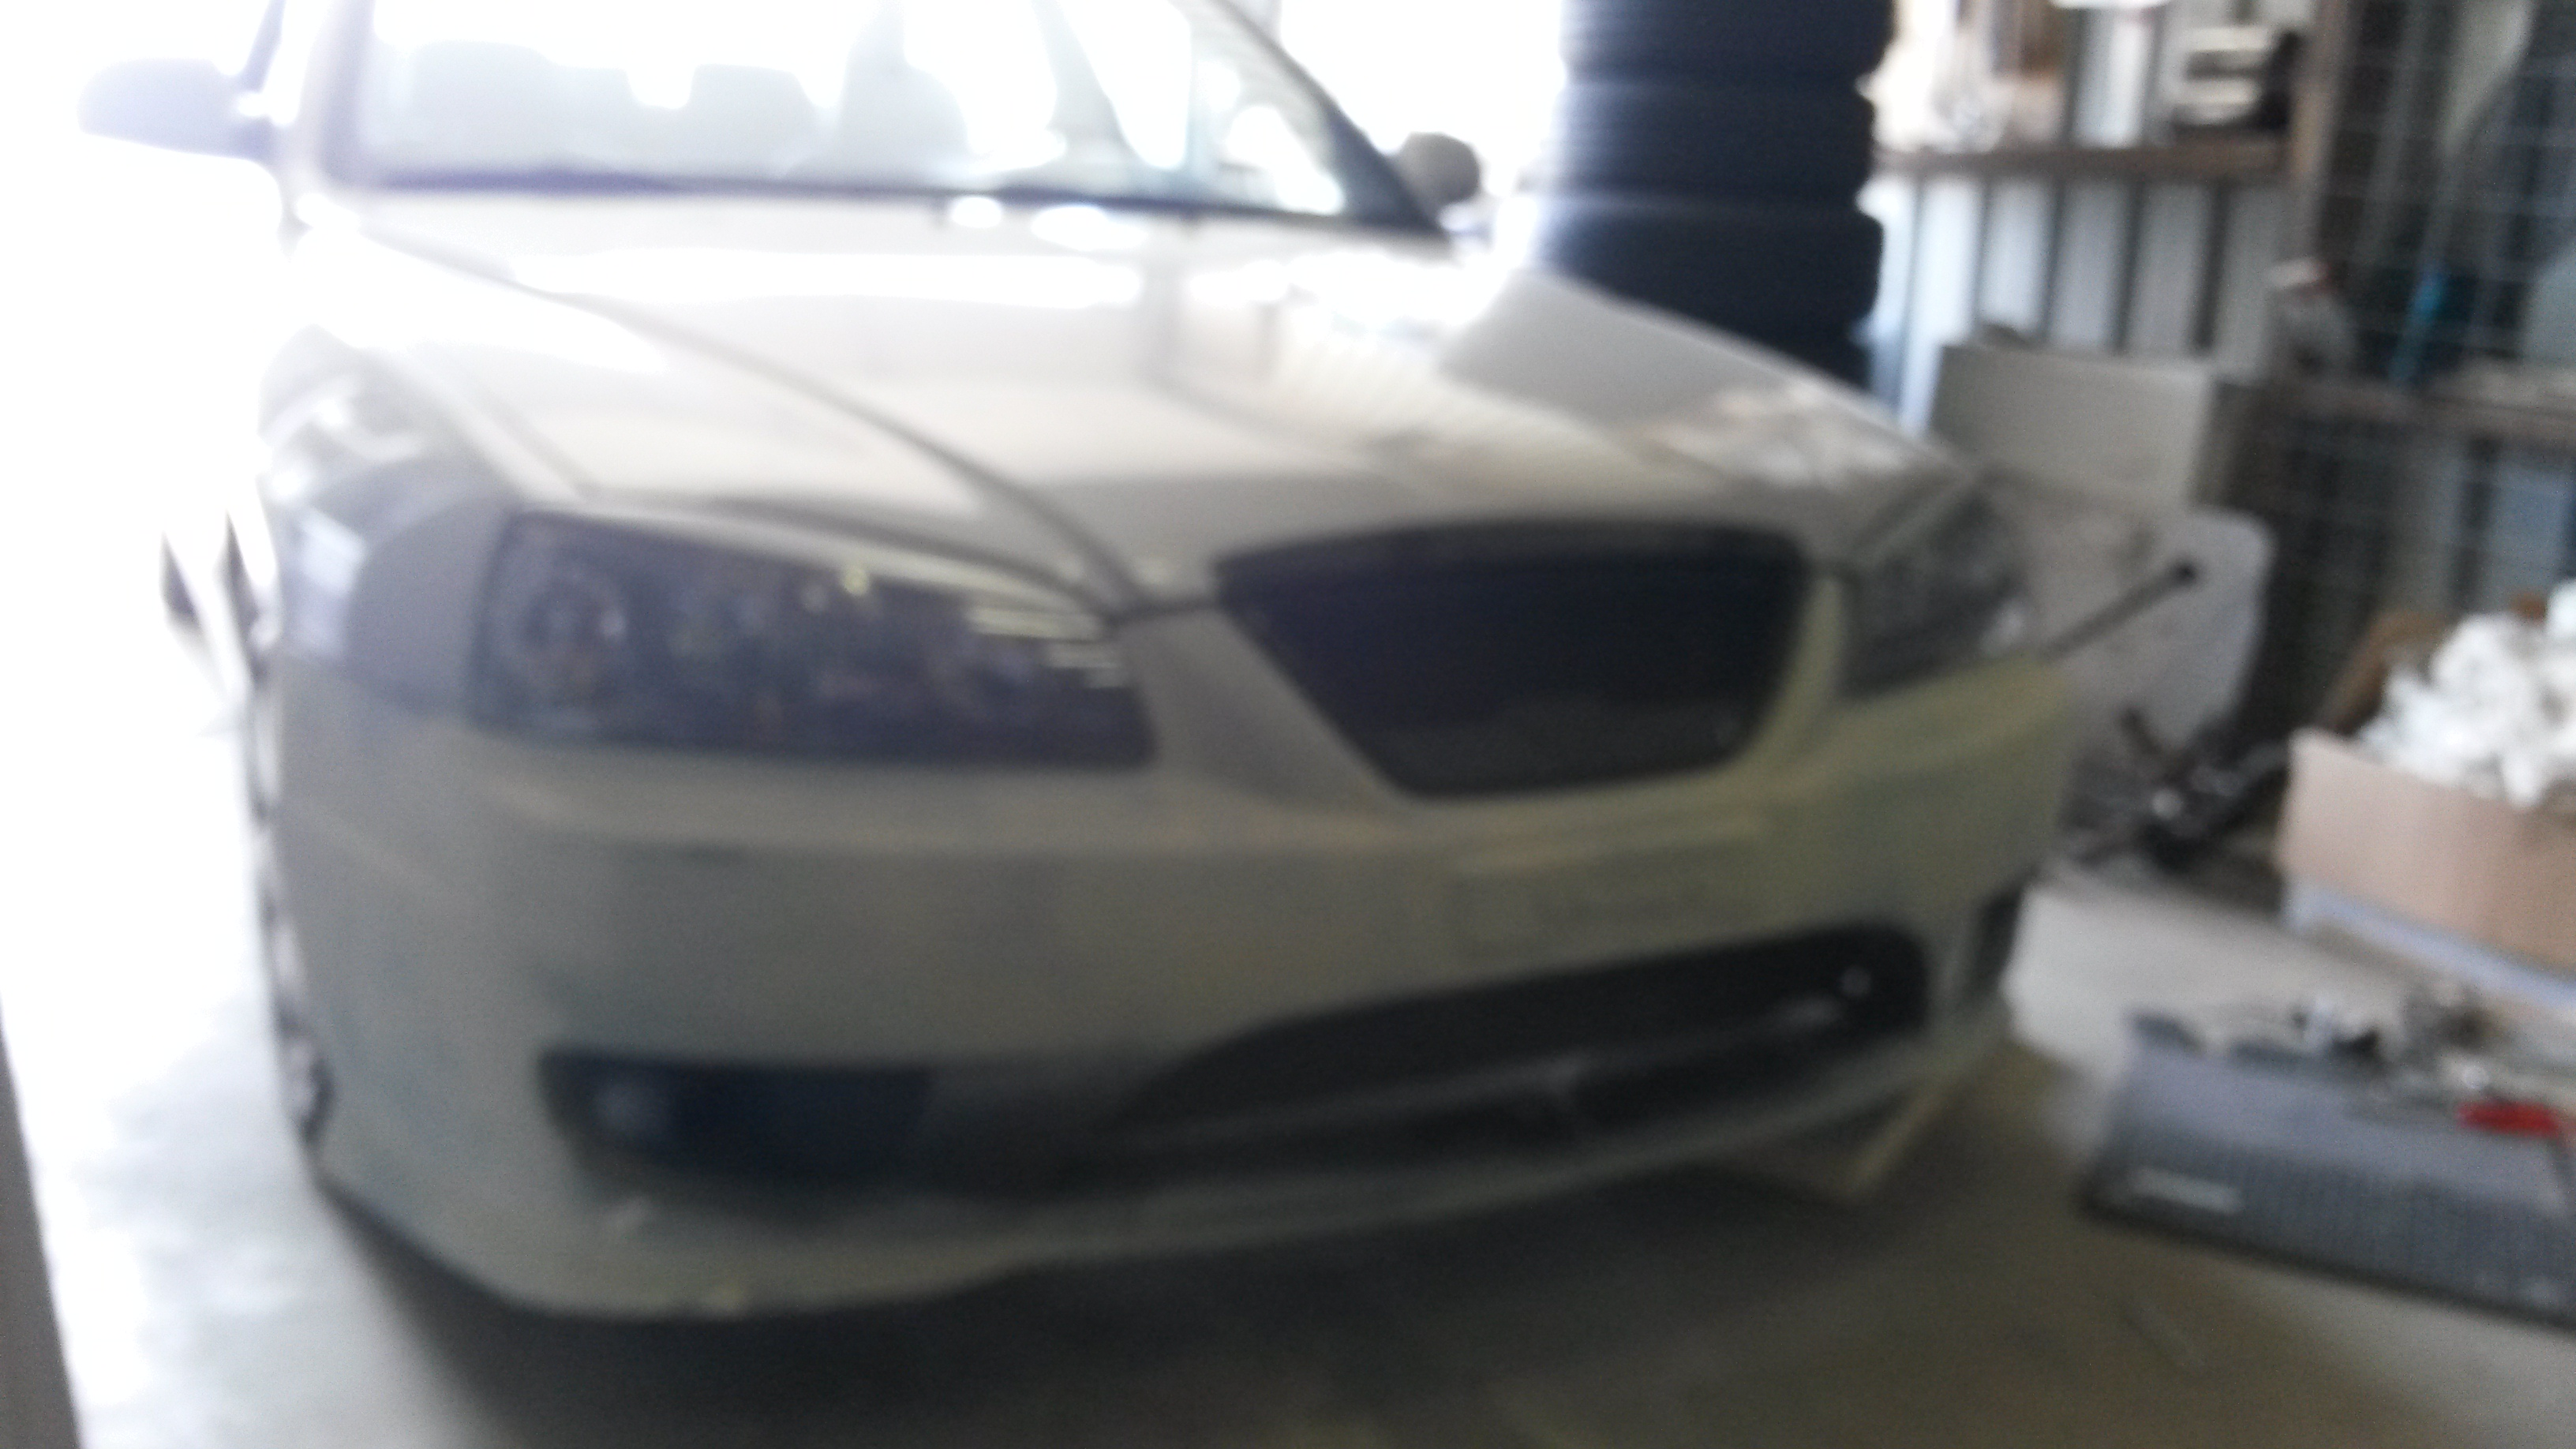 Working on my new front bumper - 19035807